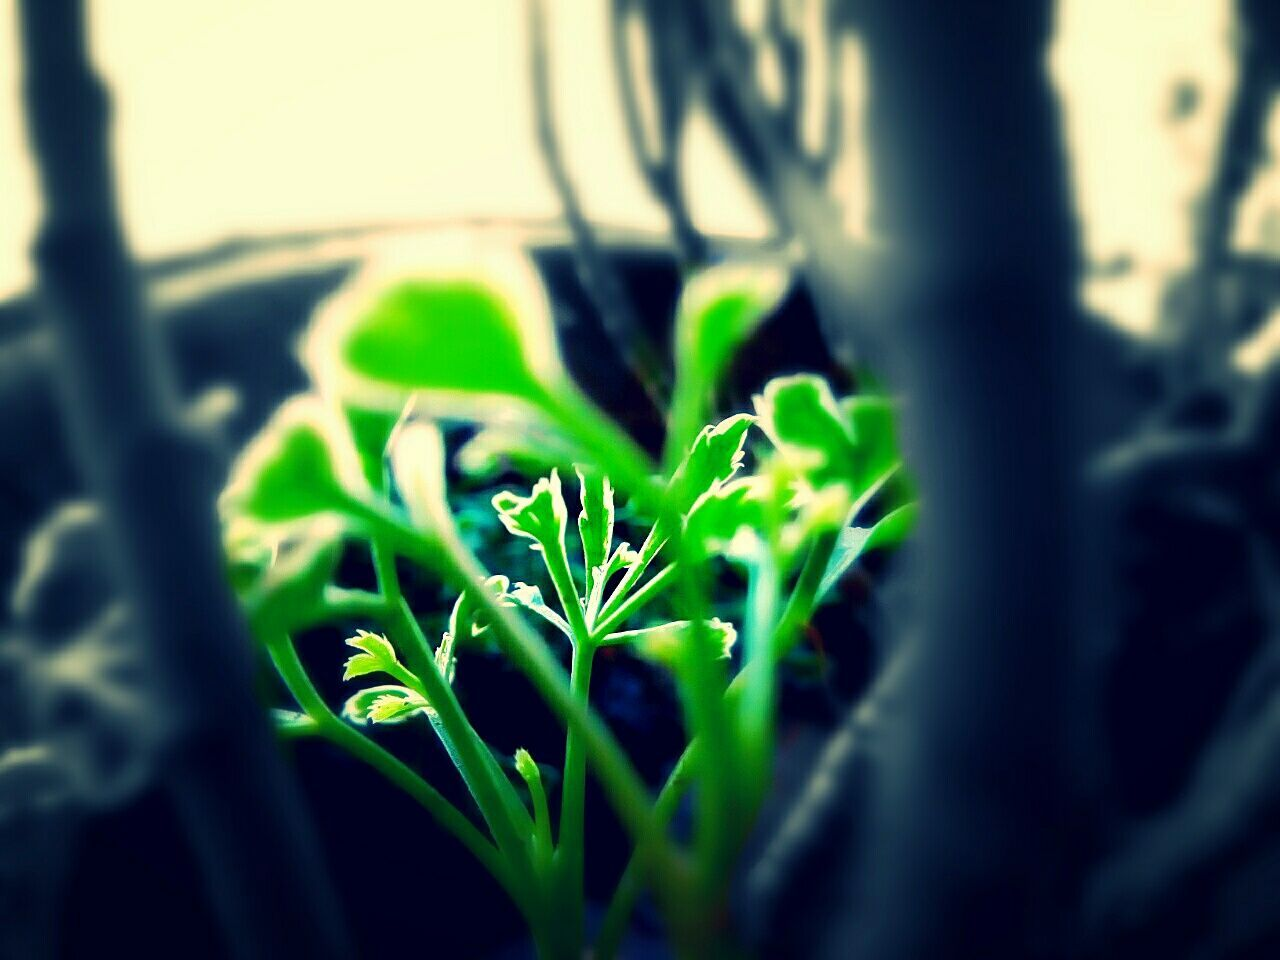 growth, plant, nature, leaf, green color, close-up, selective focus, day, no people, sunlight, outdoors, freshness, beauty in nature, fragility